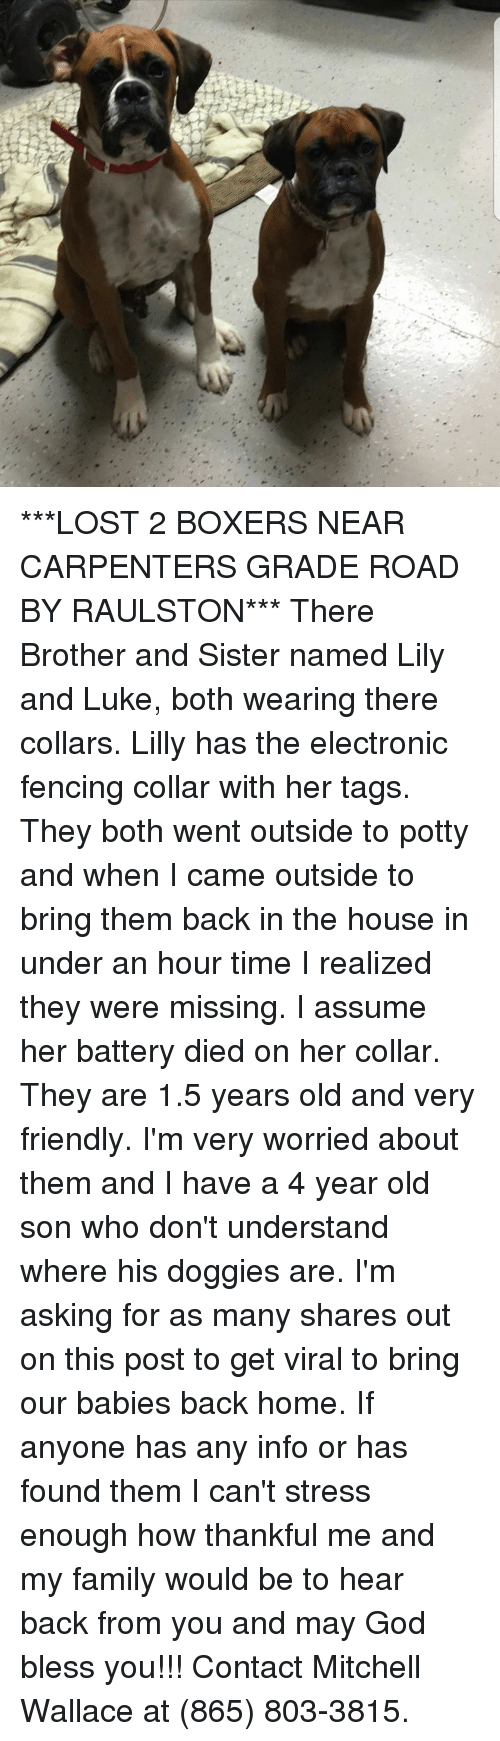 Family, God, and Memes: ***LOST 2 BOXERS NEAR CARPENTERS GRADE ROAD BY RAULSTON*** There Brother and Sister named Lily and Luke, both wearing there collars. Lilly has the electronic fencing collar with her tags. They both went outside to potty and when I came outside to bring them back in the house in under an hour time I realized they were missing. I assume her battery died on her collar. They are 1.5 years old and very friendly. I'm very worried about them and I have a 4 year old son who don't understand where his doggies are. I'm asking for as many shares out on this post to get viral to bring our babies back home. If anyone has any info or has found them I can't stress enough how thankful me and my family would be to hear back from you and may God bless you!!! Contact Mitchell Wallace at (865) 803-3815.